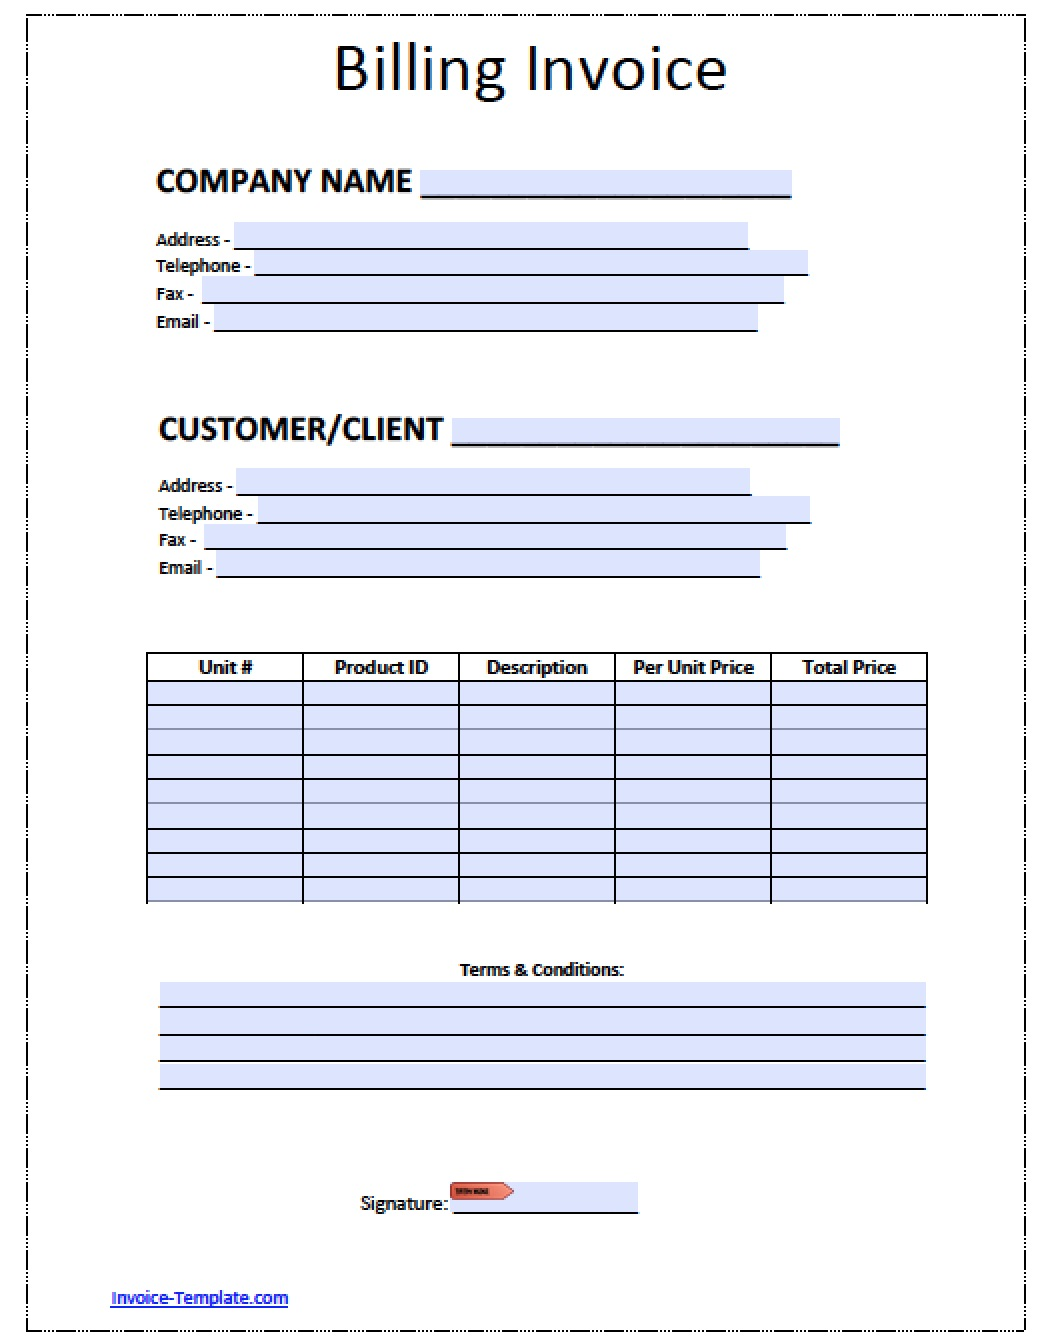 Free Blank Invoice Templates In PDF Word Excel - General invoice template